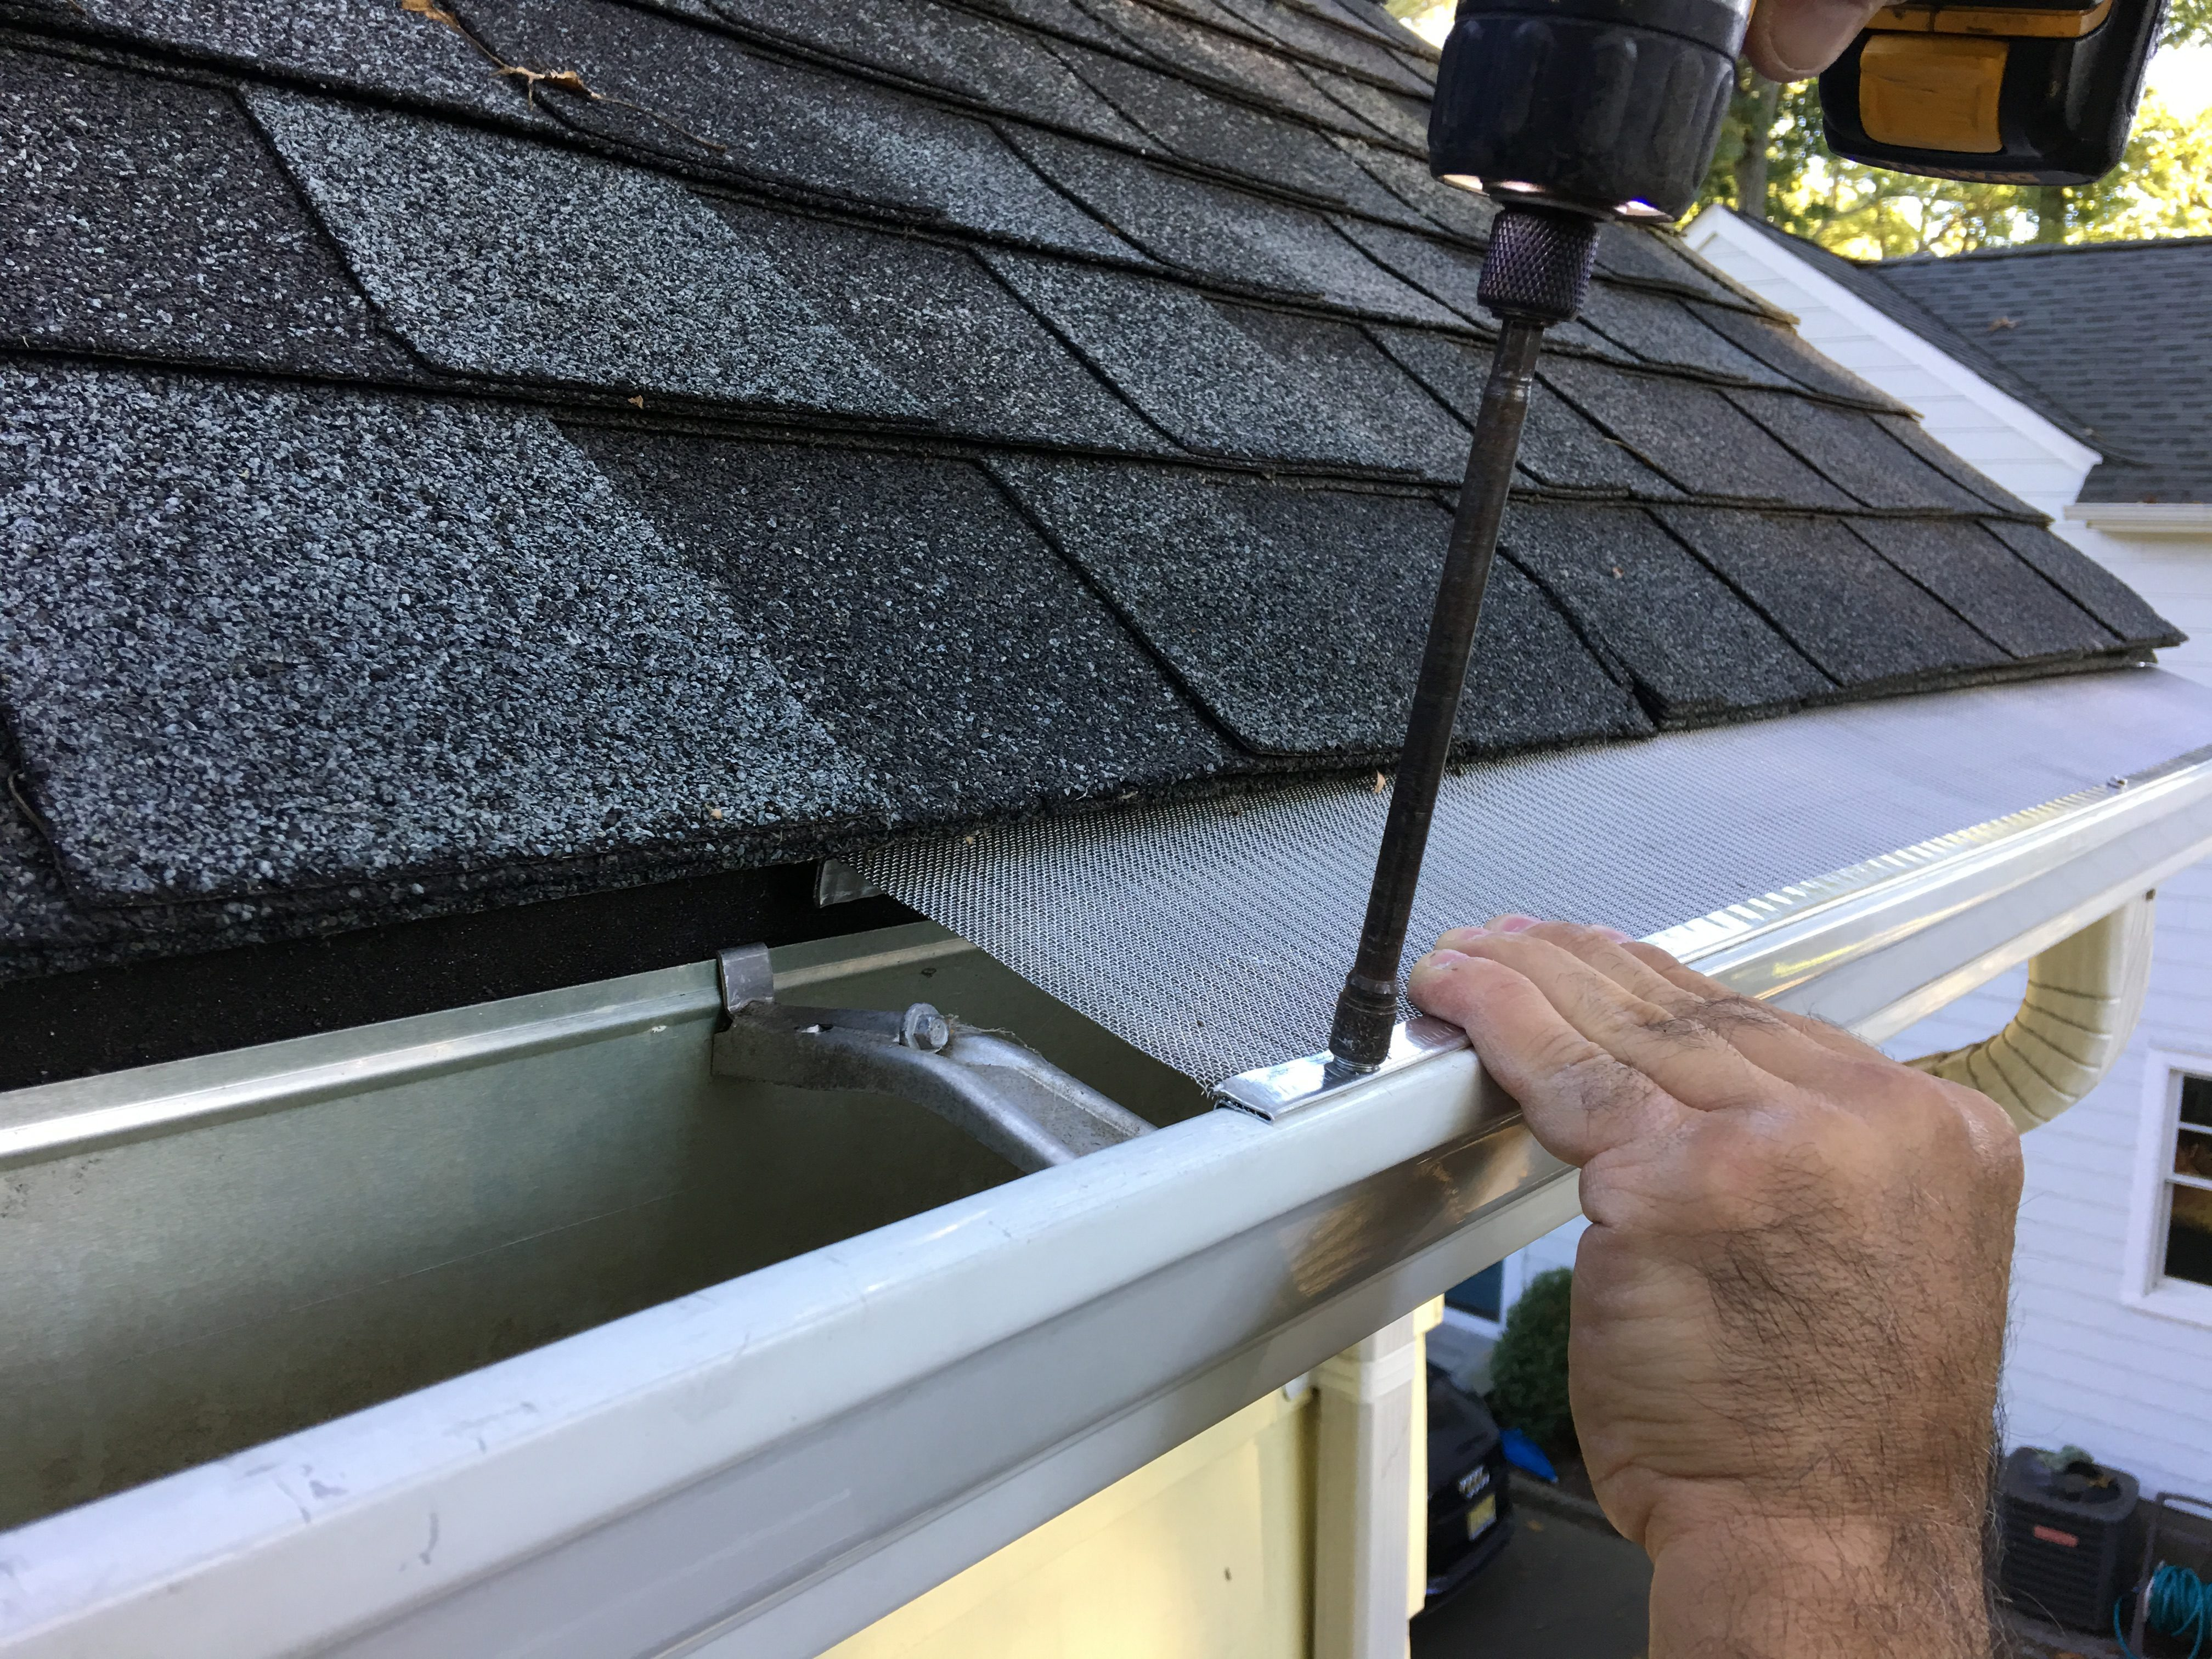 GutterLove is great when you want to install gutter covers